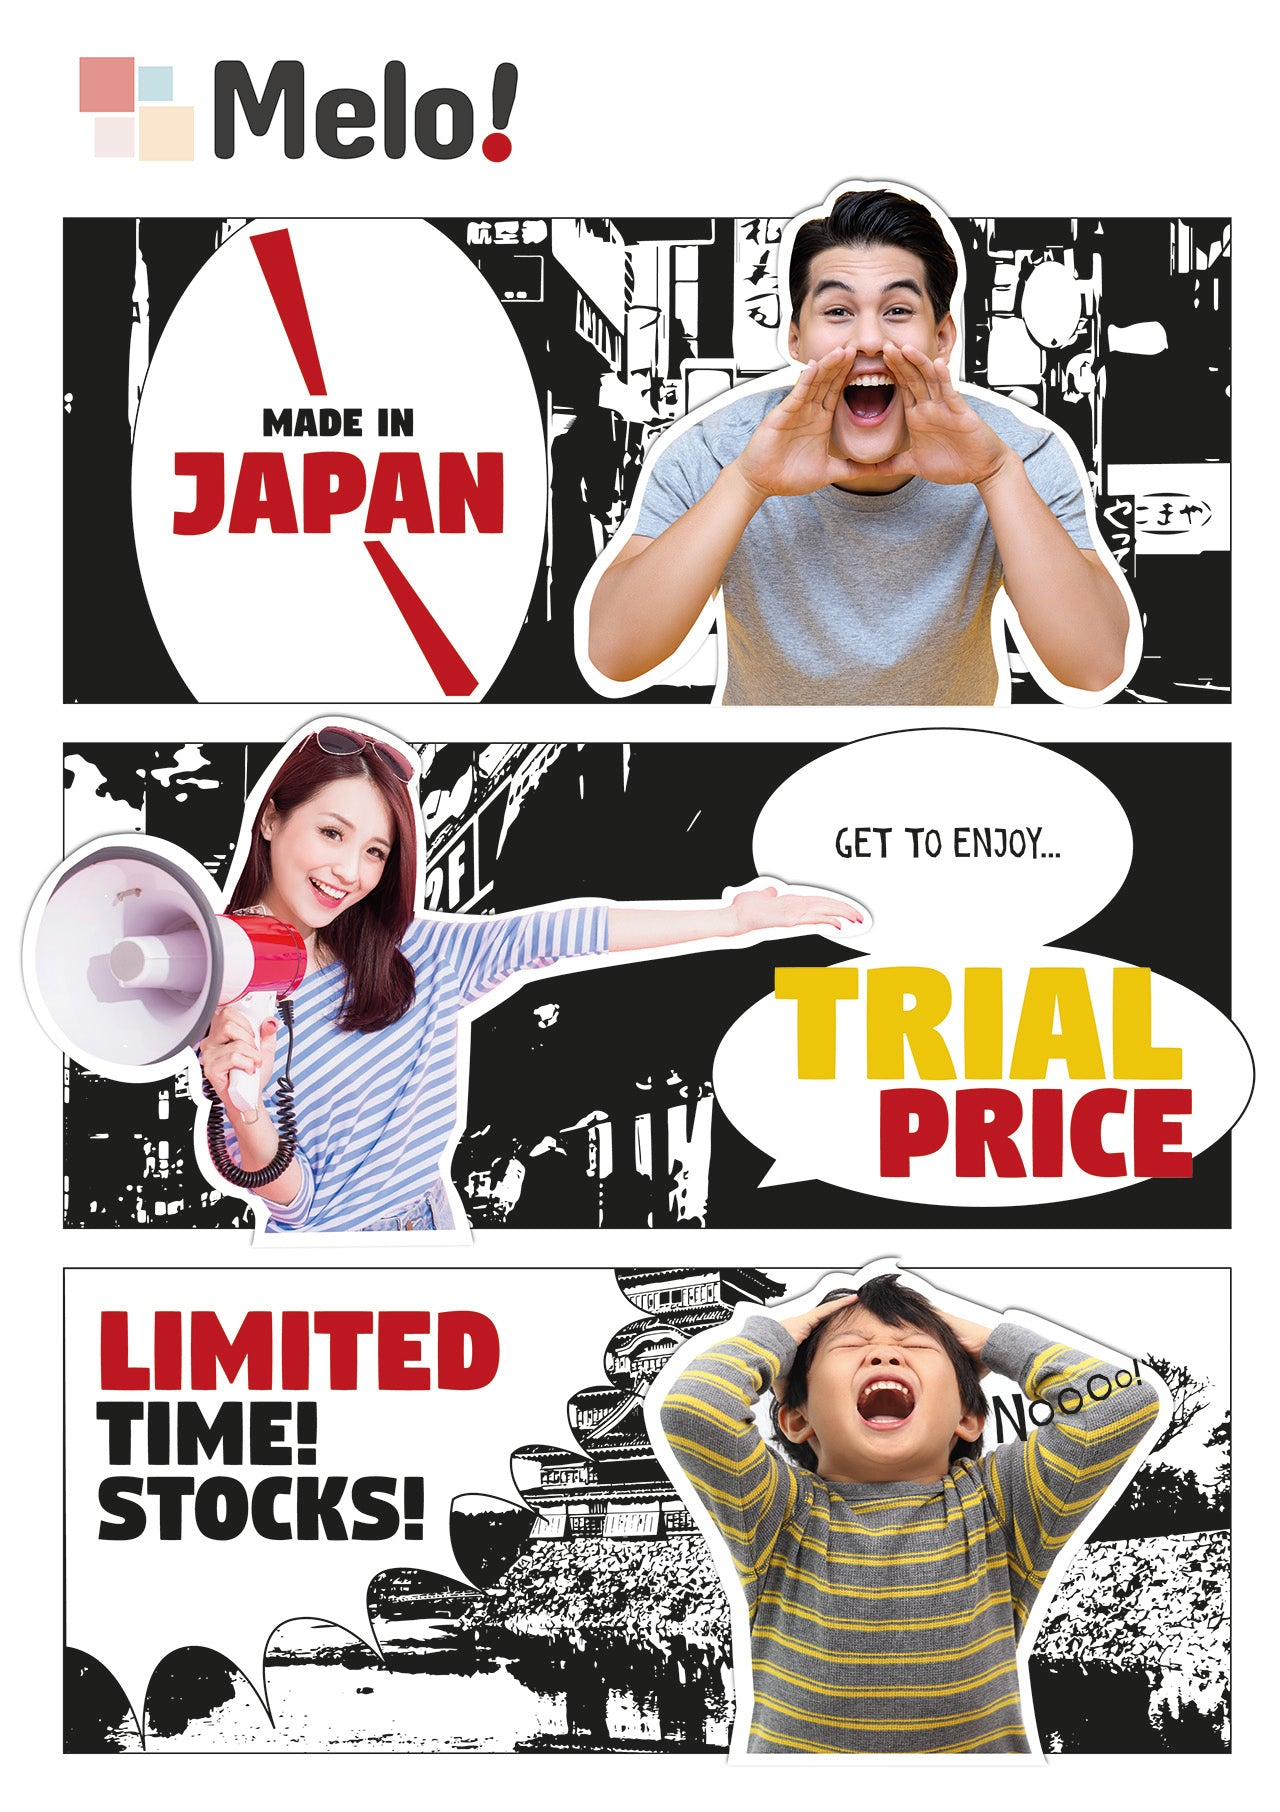 Made in Japan, Trial Price, Limited Time & Stocks